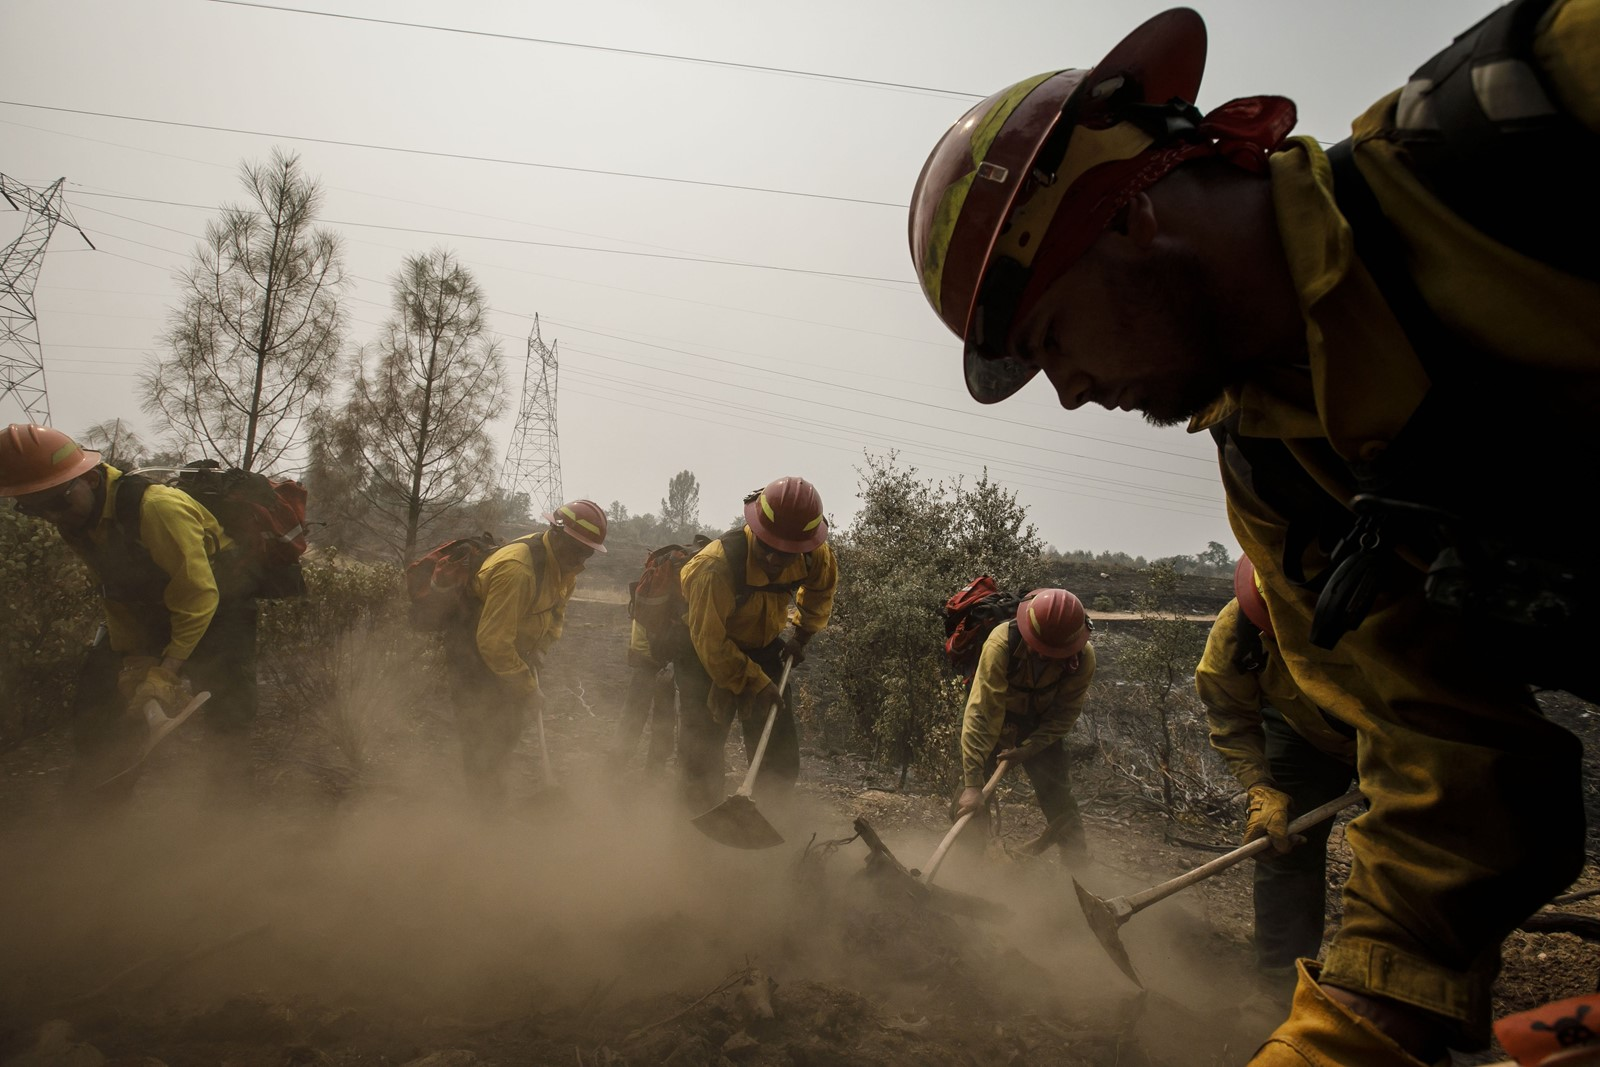 Firefighters from Oregon mop up hot spots on the Carr fire near Redding, California, where 3,600 firefighters gathered to take on the deadly blaze. — Photograph: Marcus Yam/Los Angeles Times.